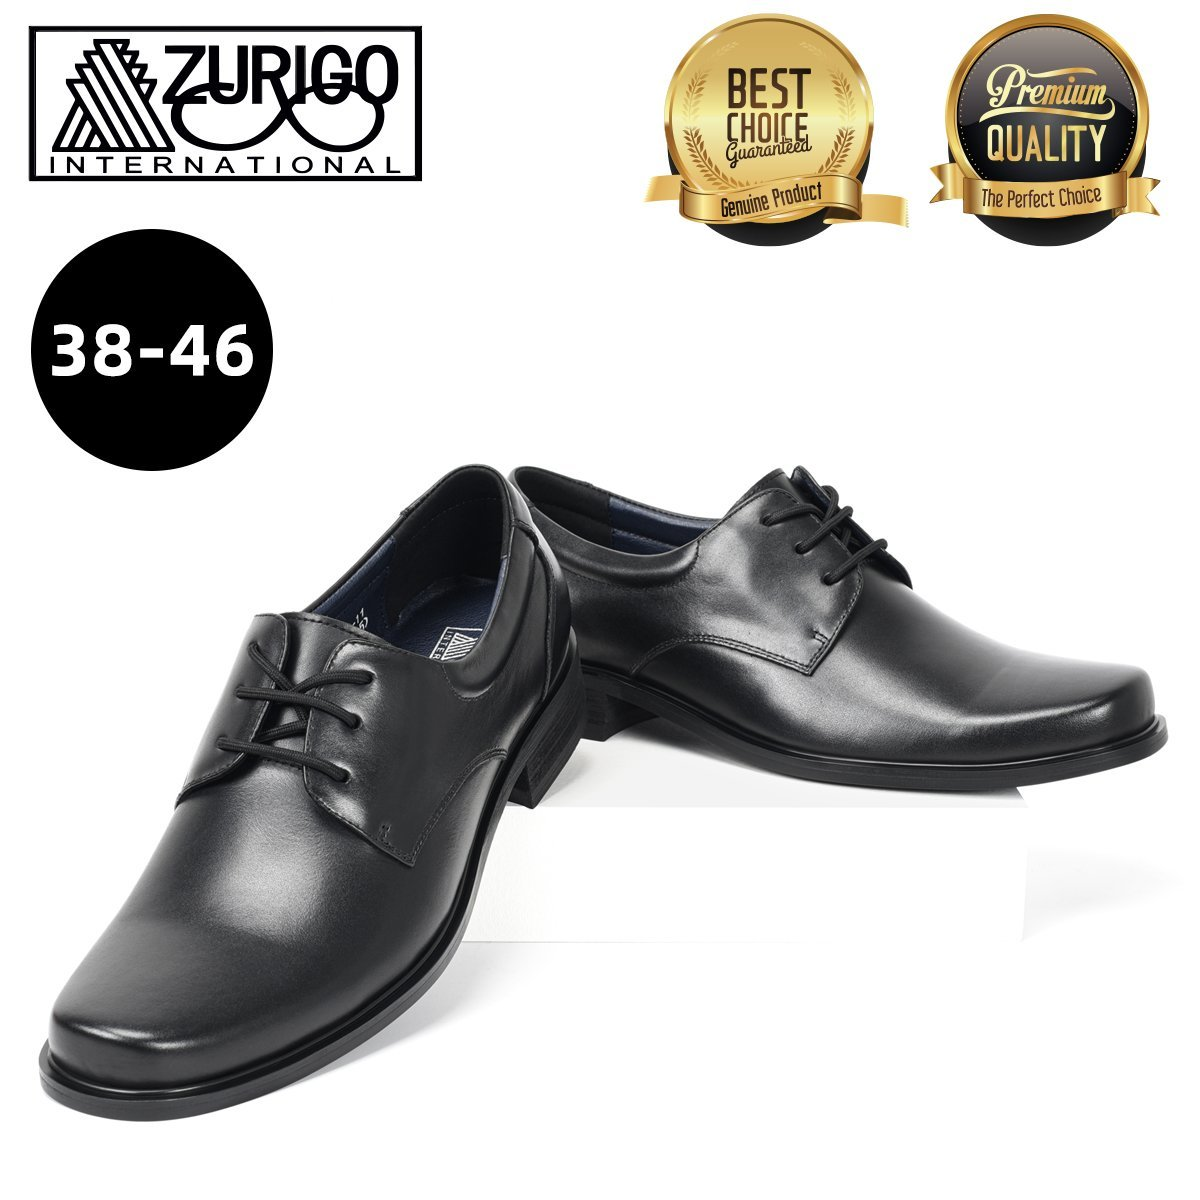 Men's Hand Made Genuine Leather Comfort Formal Shoes 90101-11 38 Black Wedding Shoes, Leather Shoes